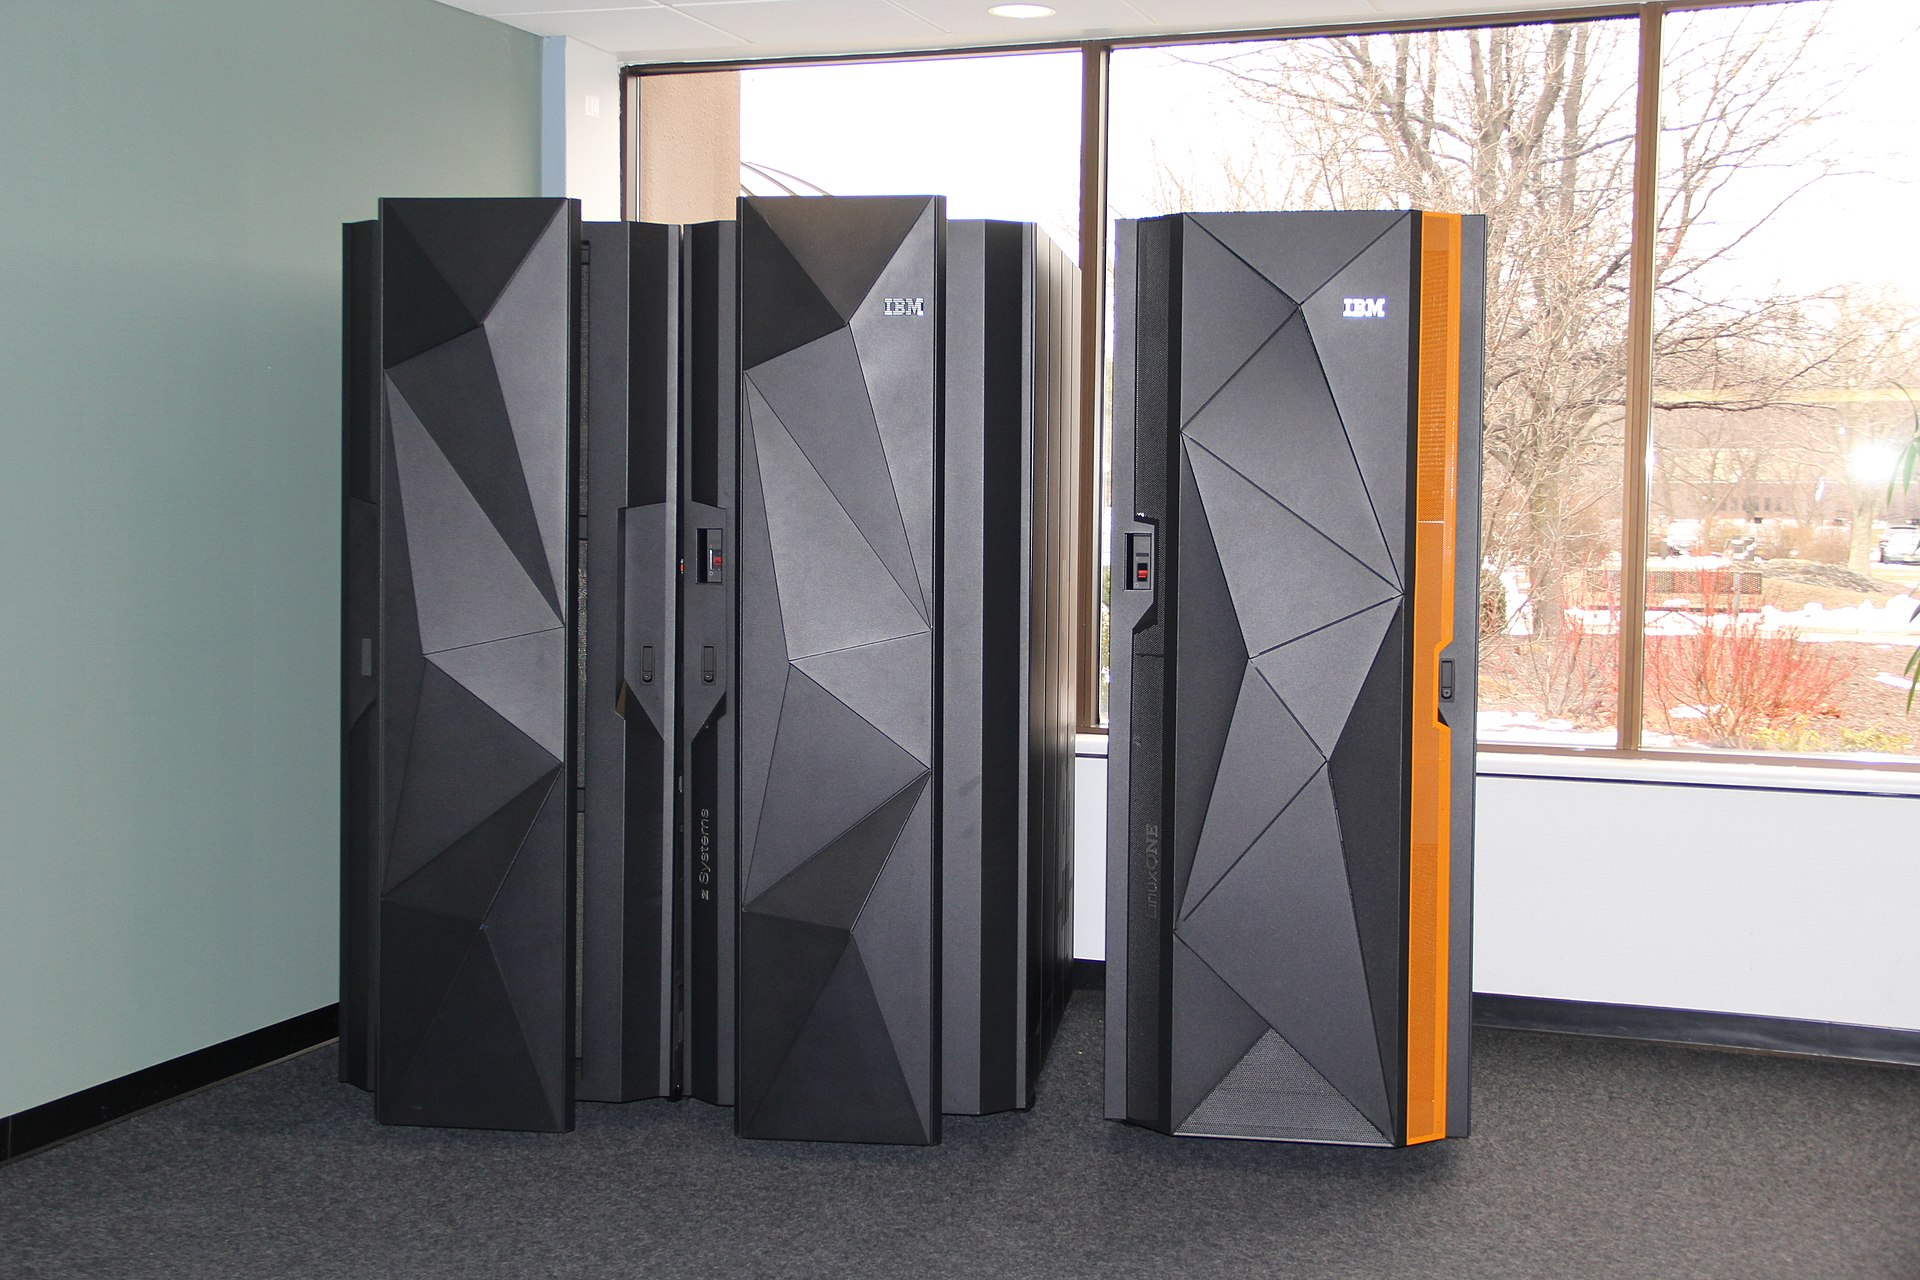 Mainframe computer wikipedia for Decor systems